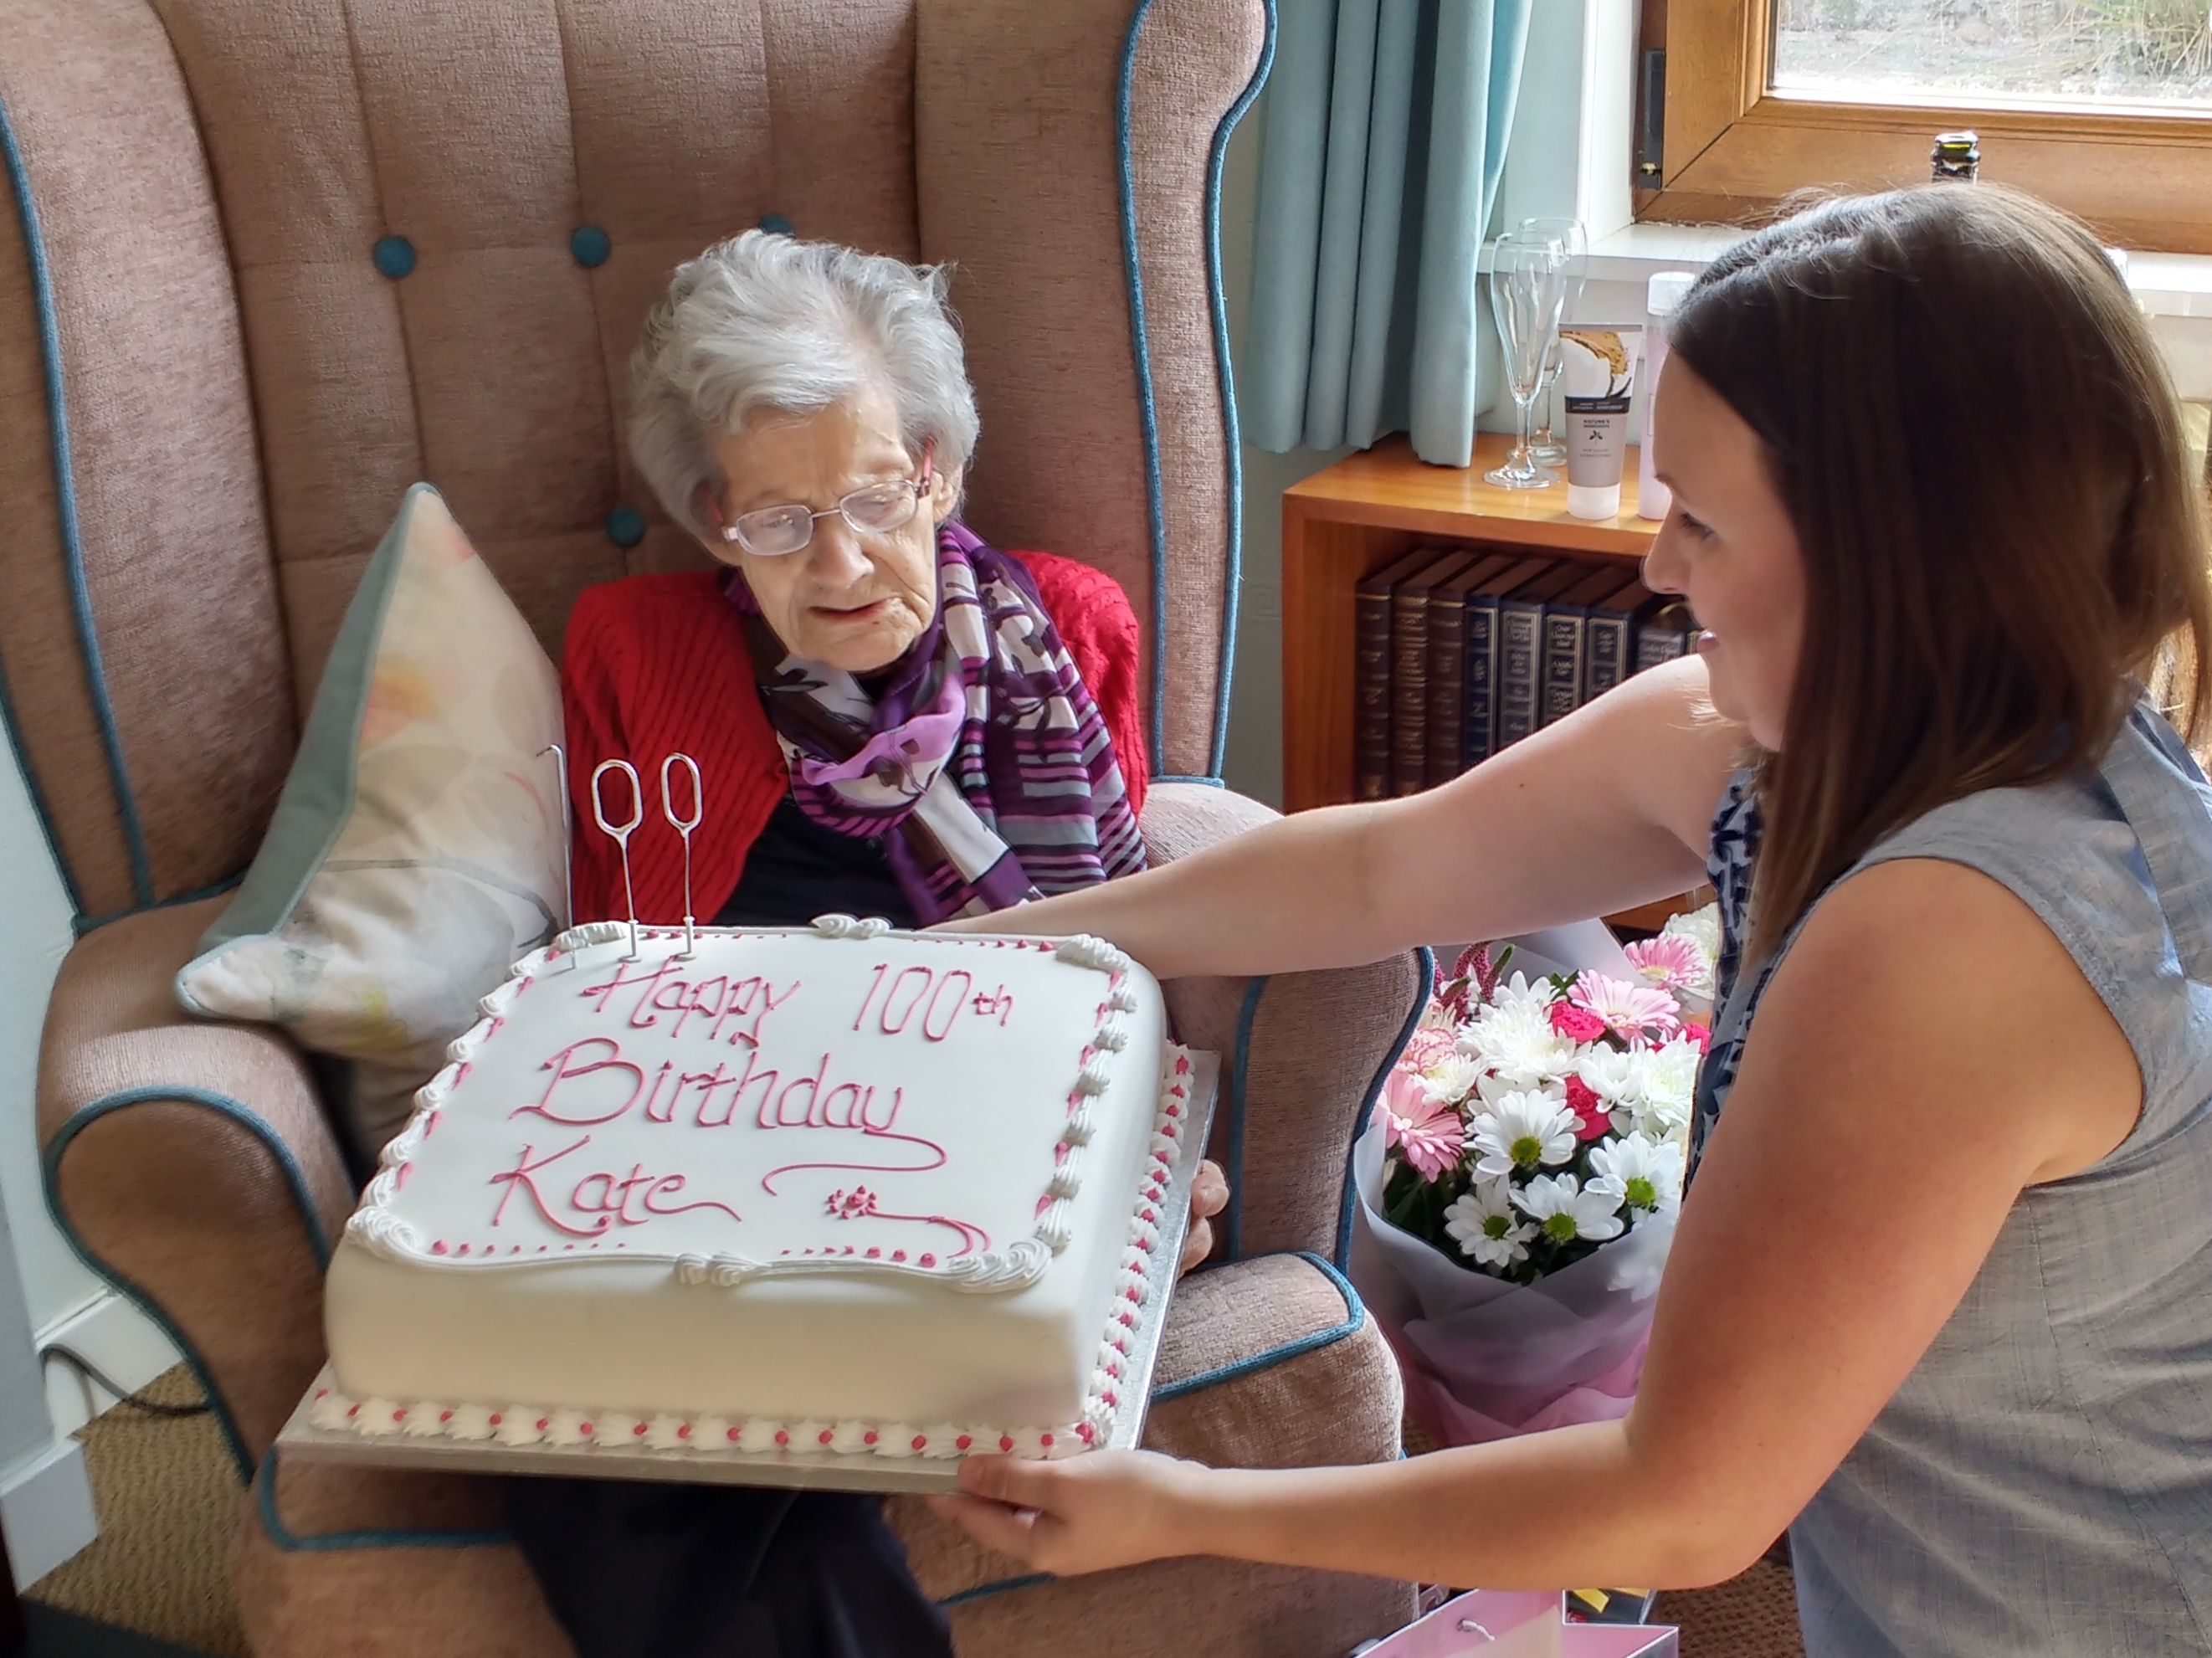 Kate Ingram being presented with her birthday cake by one of her great-nieces Rhona Bowie